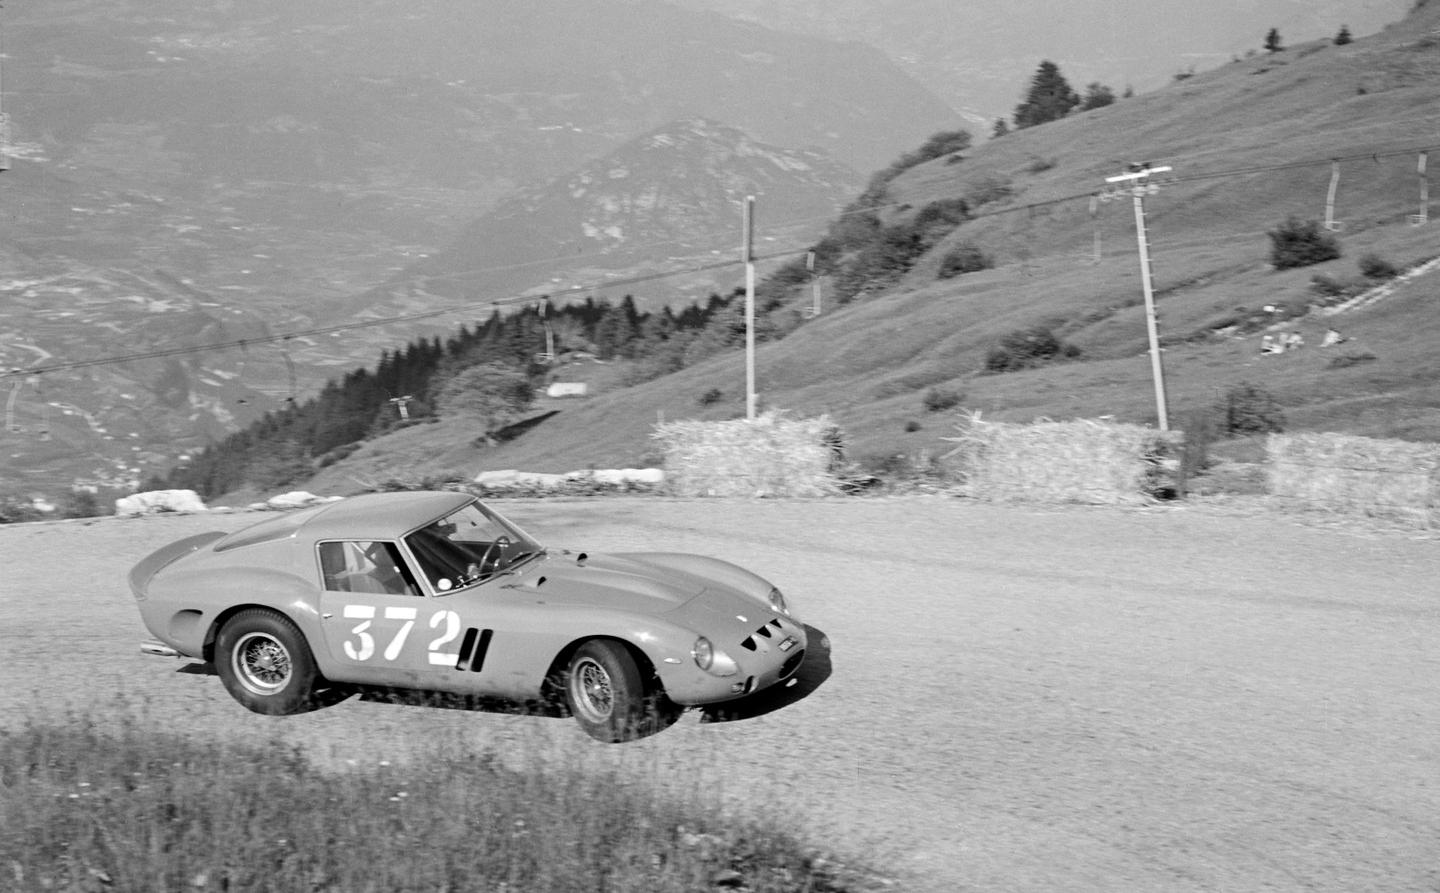 This is theFerrari 250 GTO that isfor sale in Monterey, pictured in period